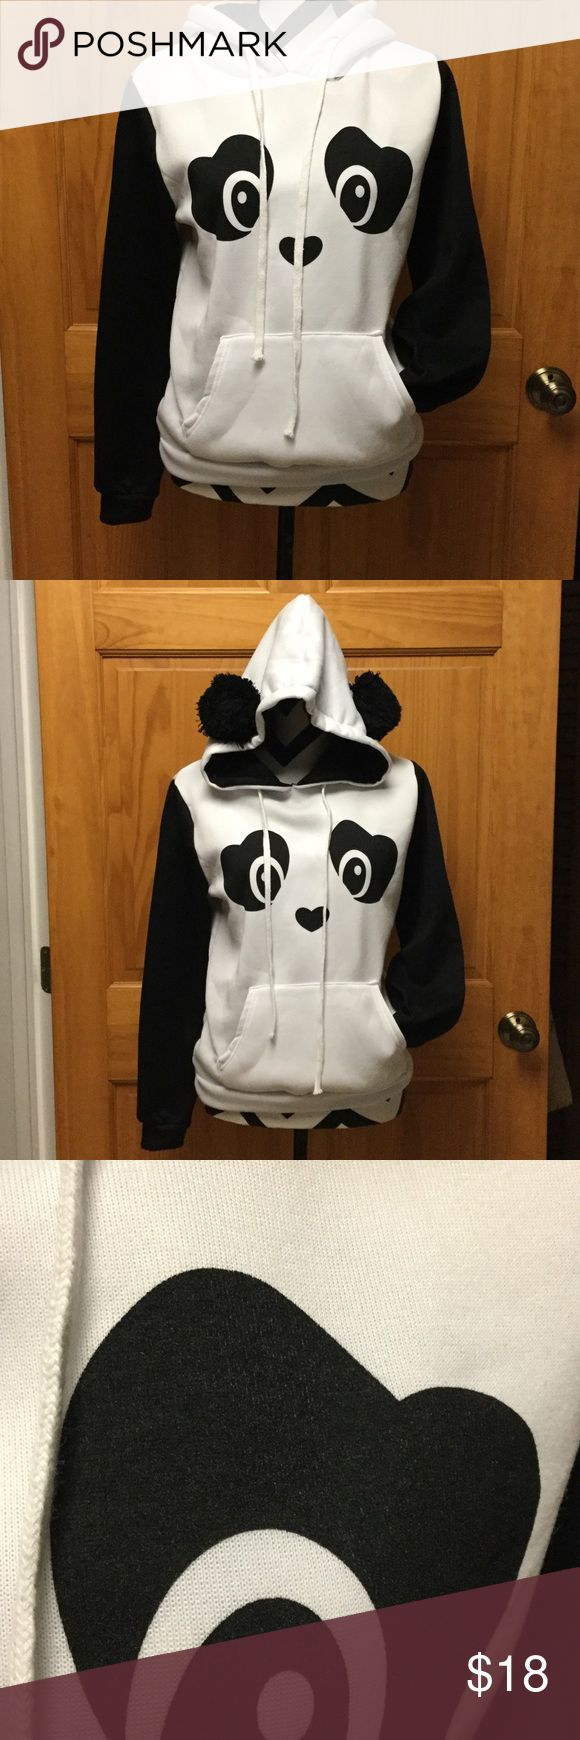 🐼 ADORABLE Panda Hoodie! 🐼 Super cute! Super soft! EUC! And Panda ears!! This sweatshirt is SO cute, and worn maybe 3 times! No flaws! It is the very soft fleece on the inside. Hood is so cute with pom-pom ears! There are no tags on the inside to tell you the maker or size. It was my teen daughters and she always wears a small. I will get measurements upon request. 🐼 Tops Sweatshirts & Hoodies